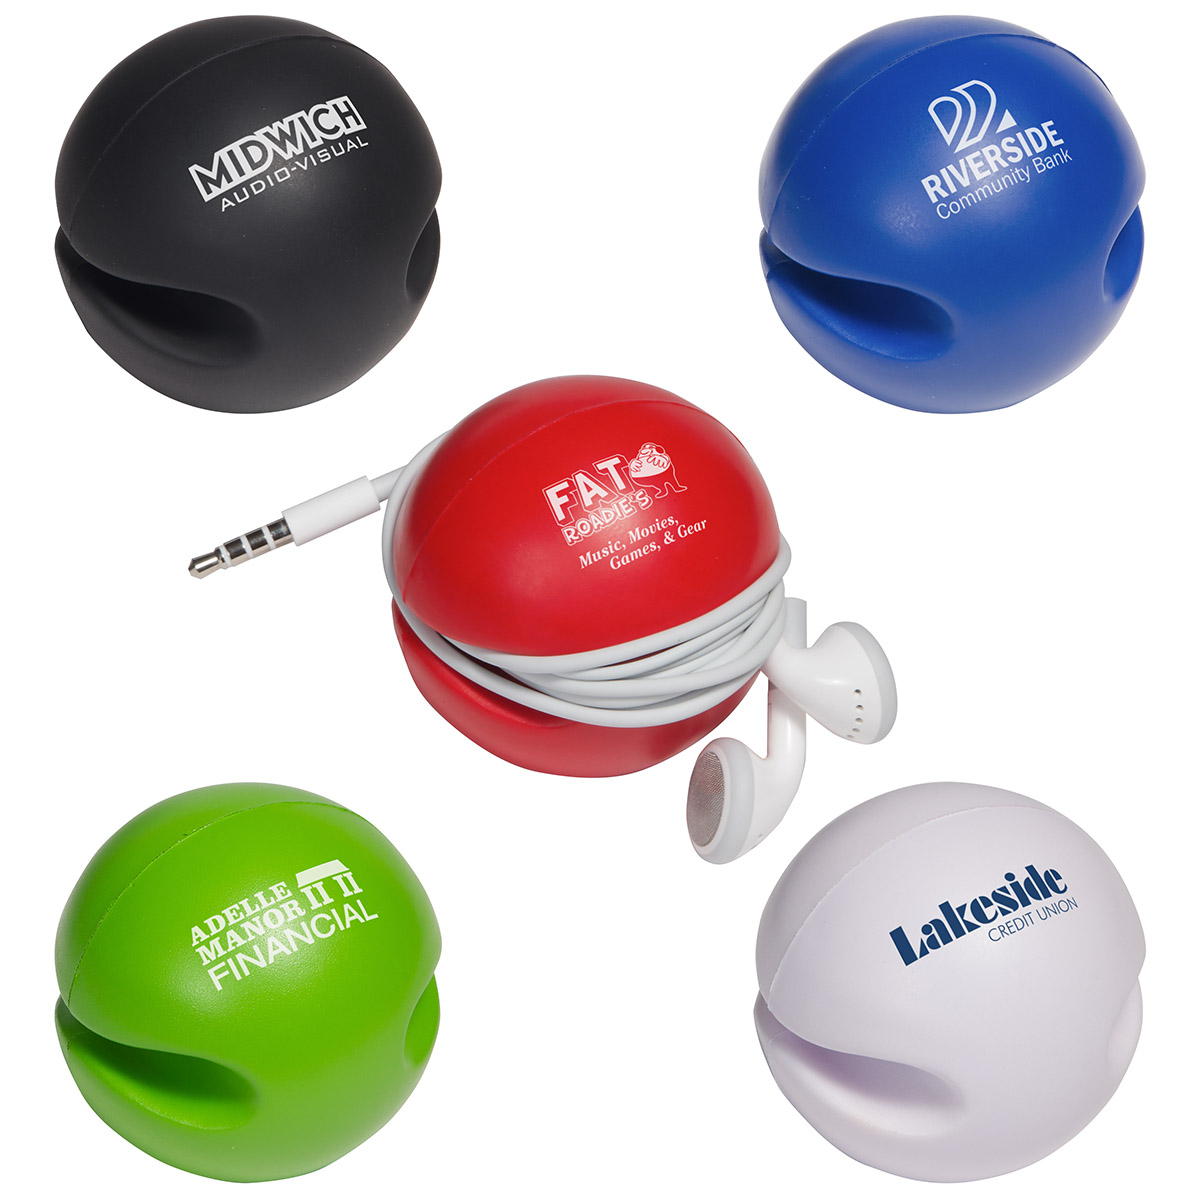 Cushy Earbud Keeper Stress Reliever, LTV-CS15, 1 Colour Imprint